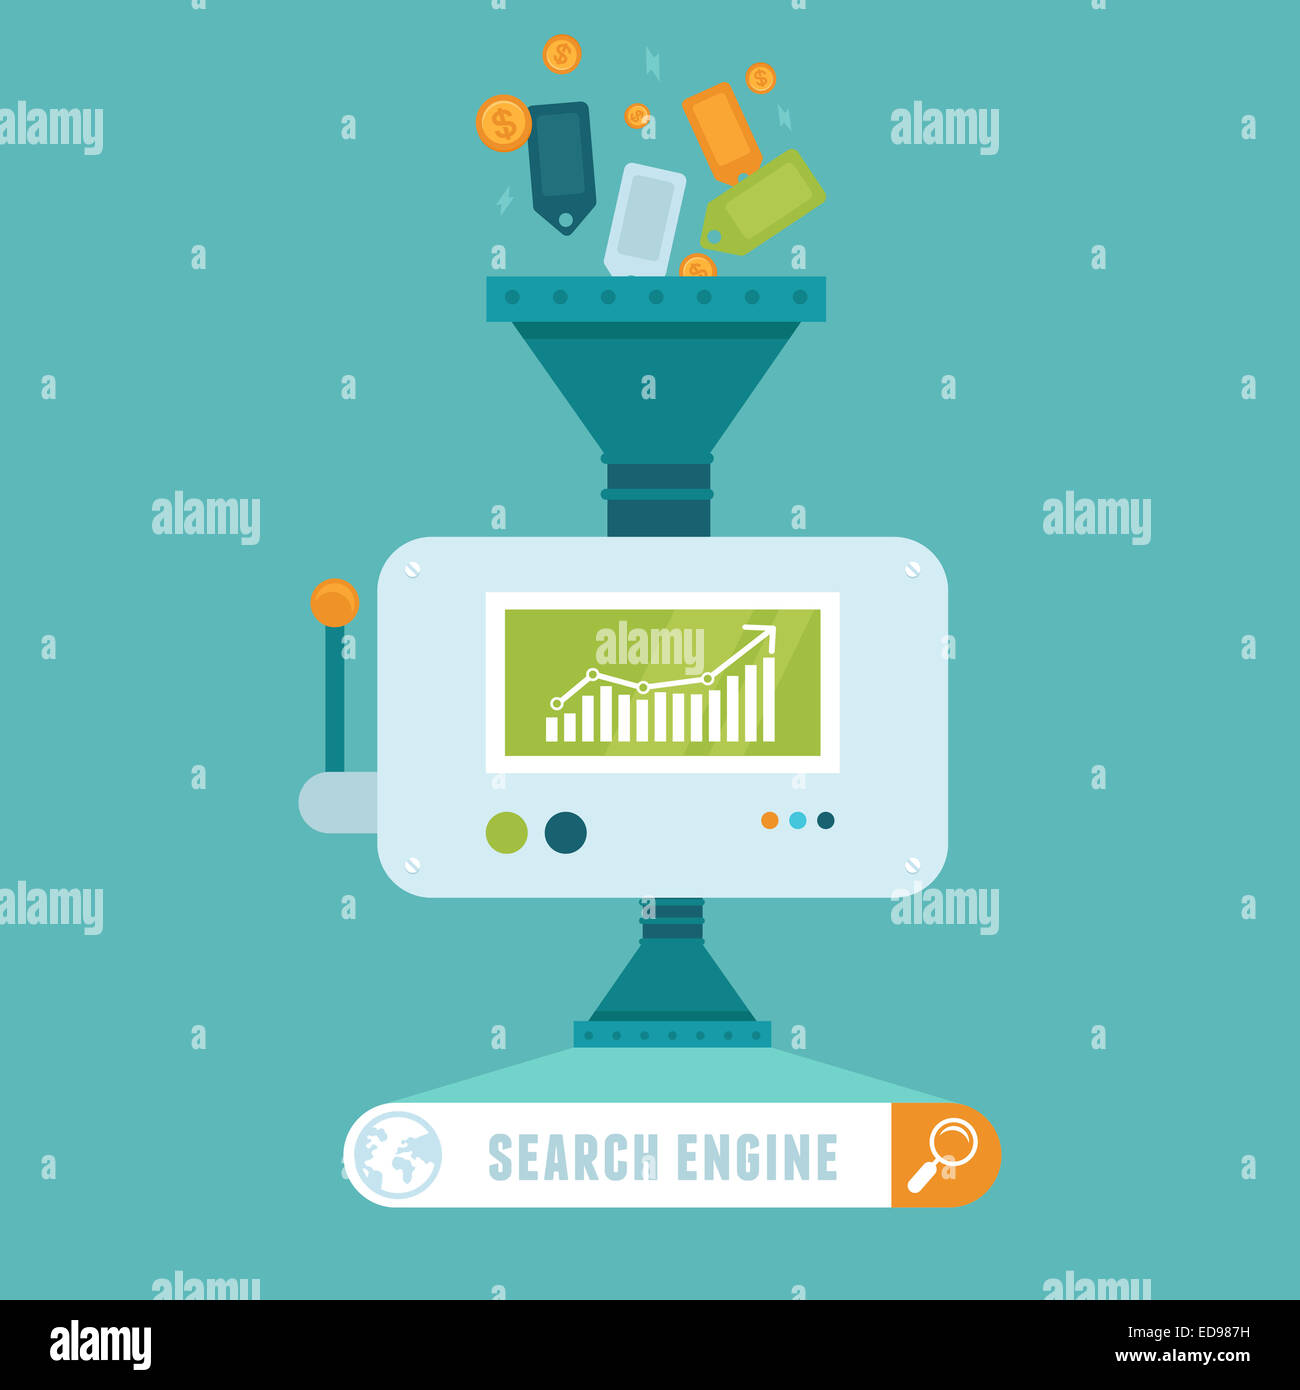 Search engine concept in flat style - Stock Photo